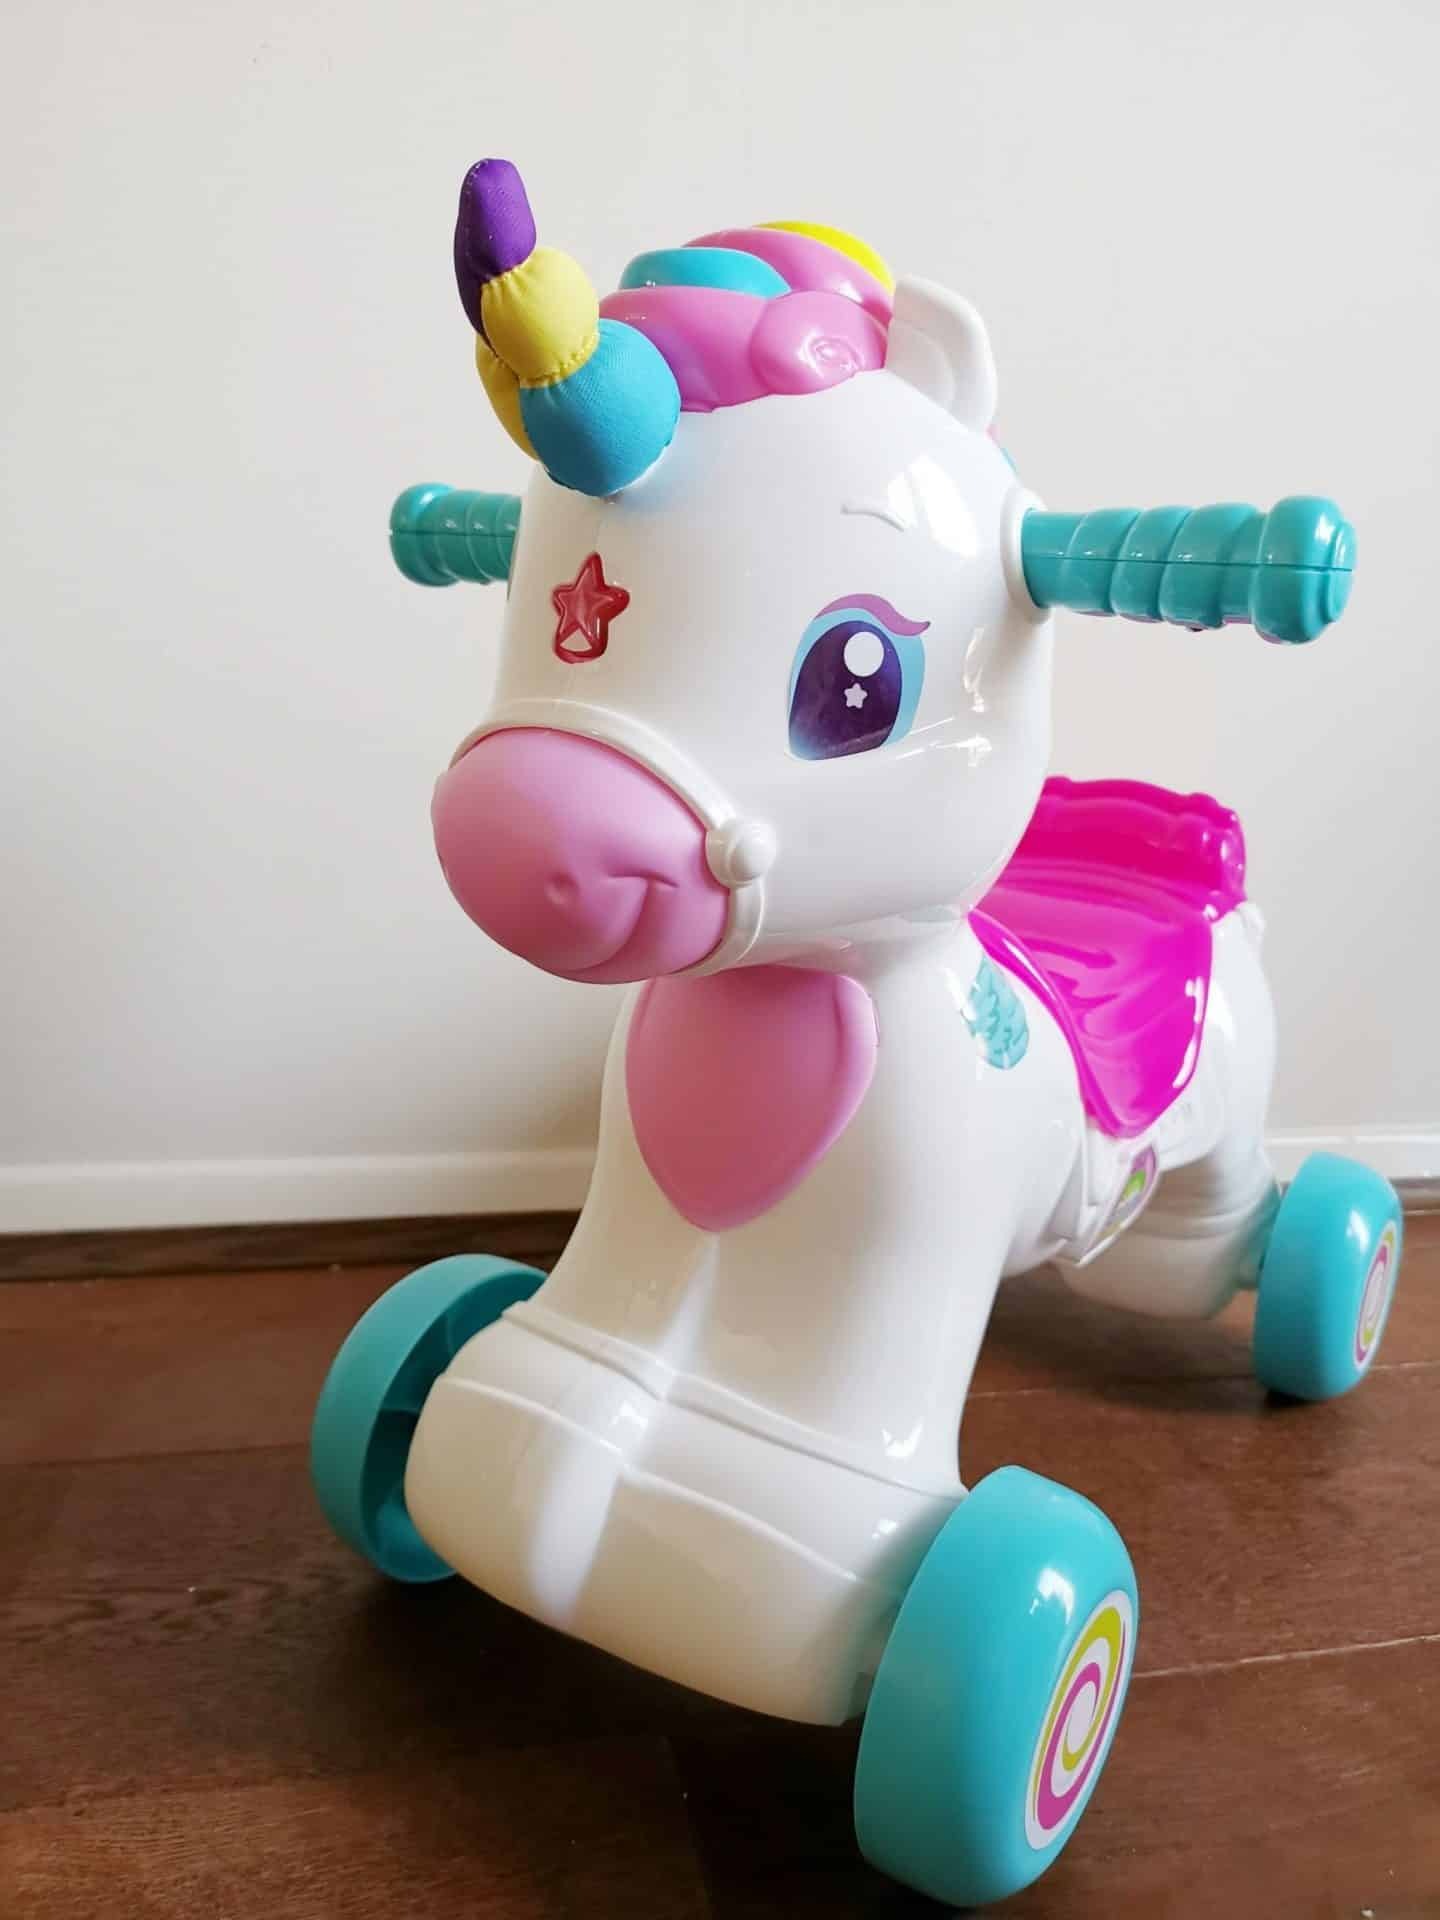 Baby Clementoni ride on unicorn review